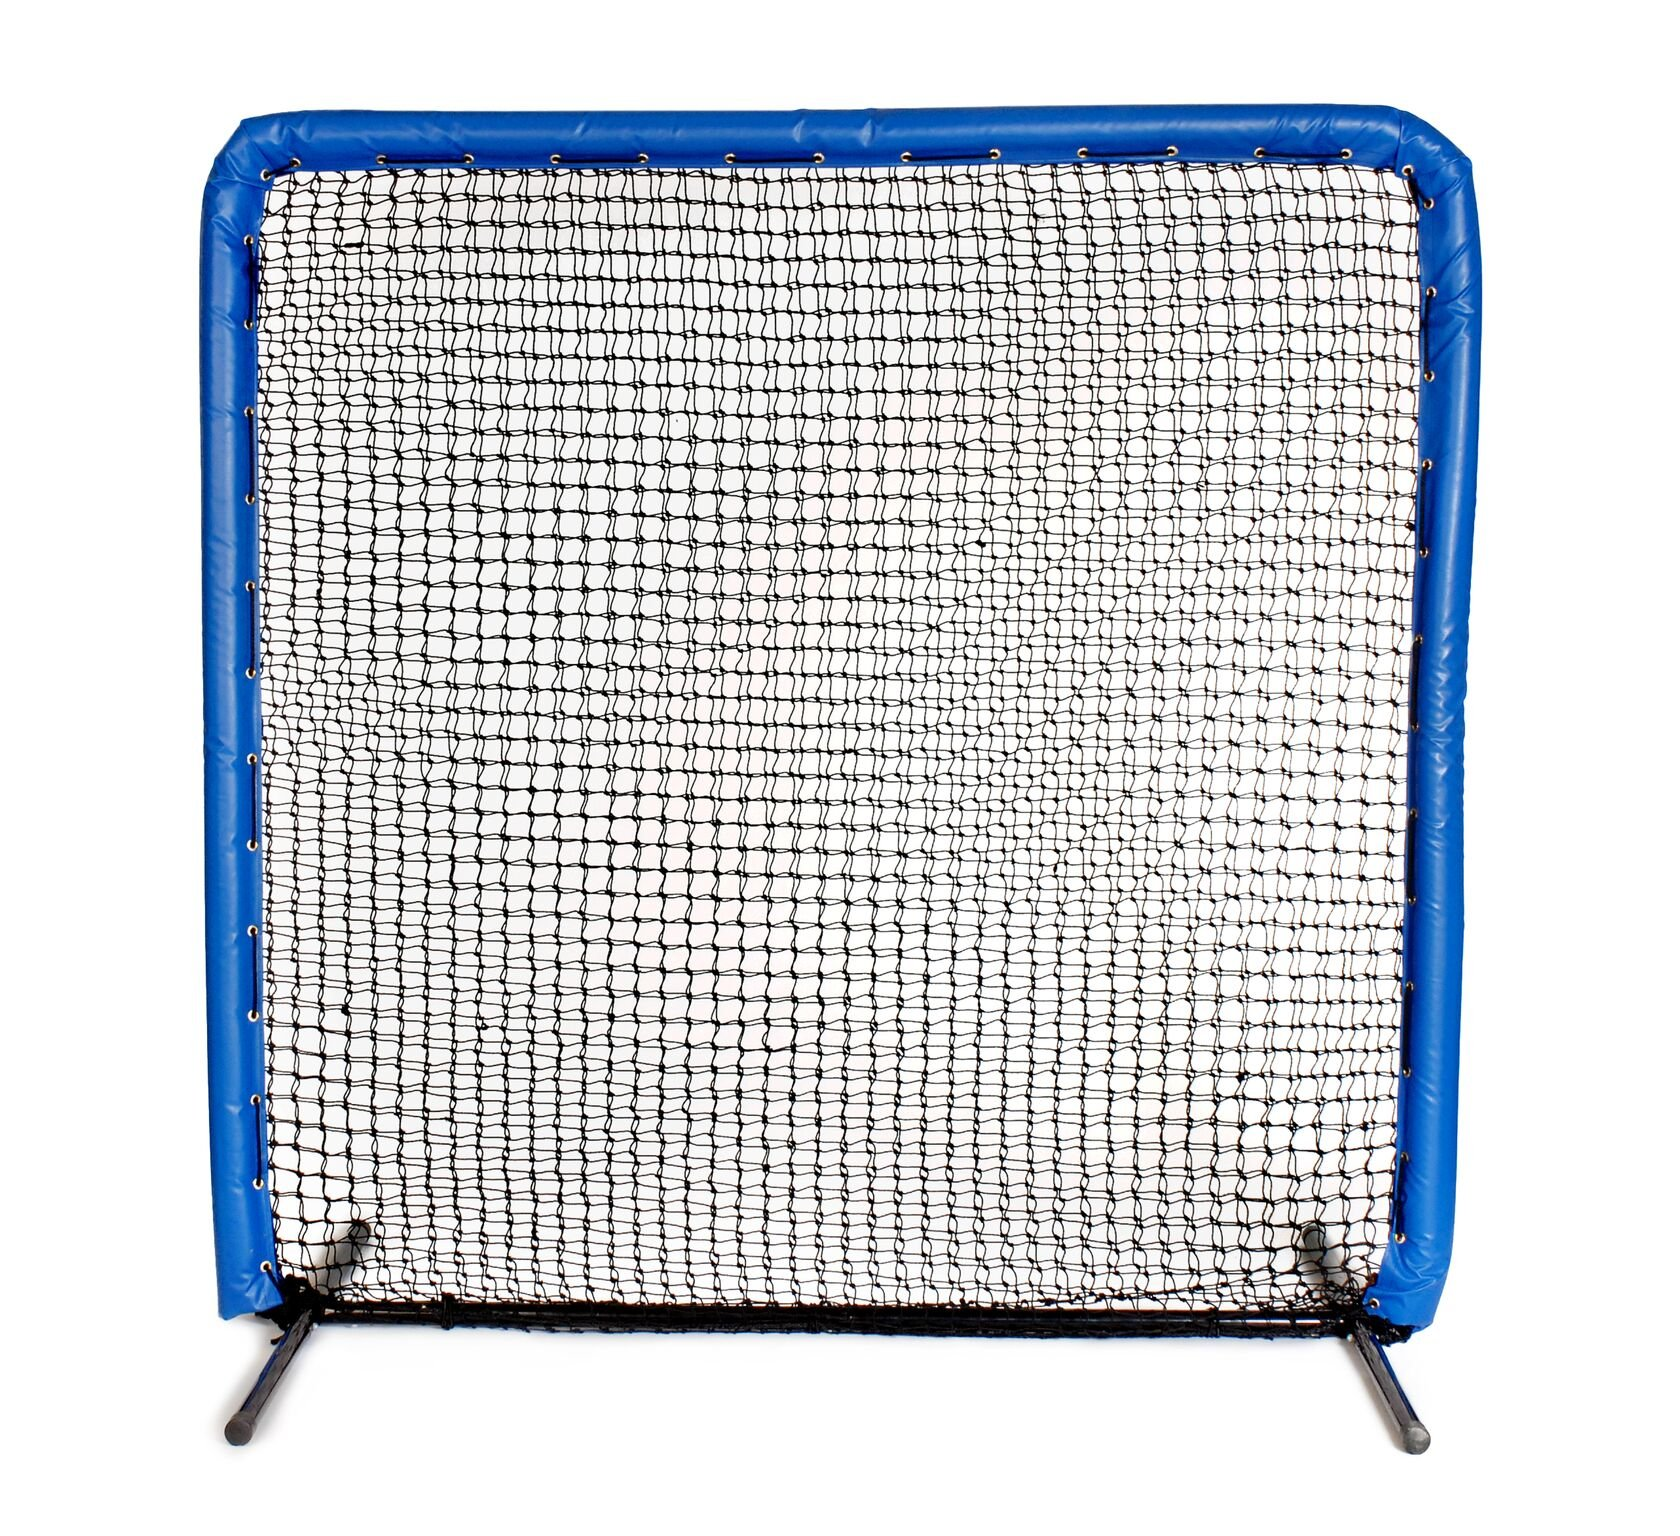 Armor Series 7X7 Protective Screen with Screen Bulletz. Baseball/Softball Padded Practice Screen Net with Vinyl Padding. Choose Color! (Royal) by Armor